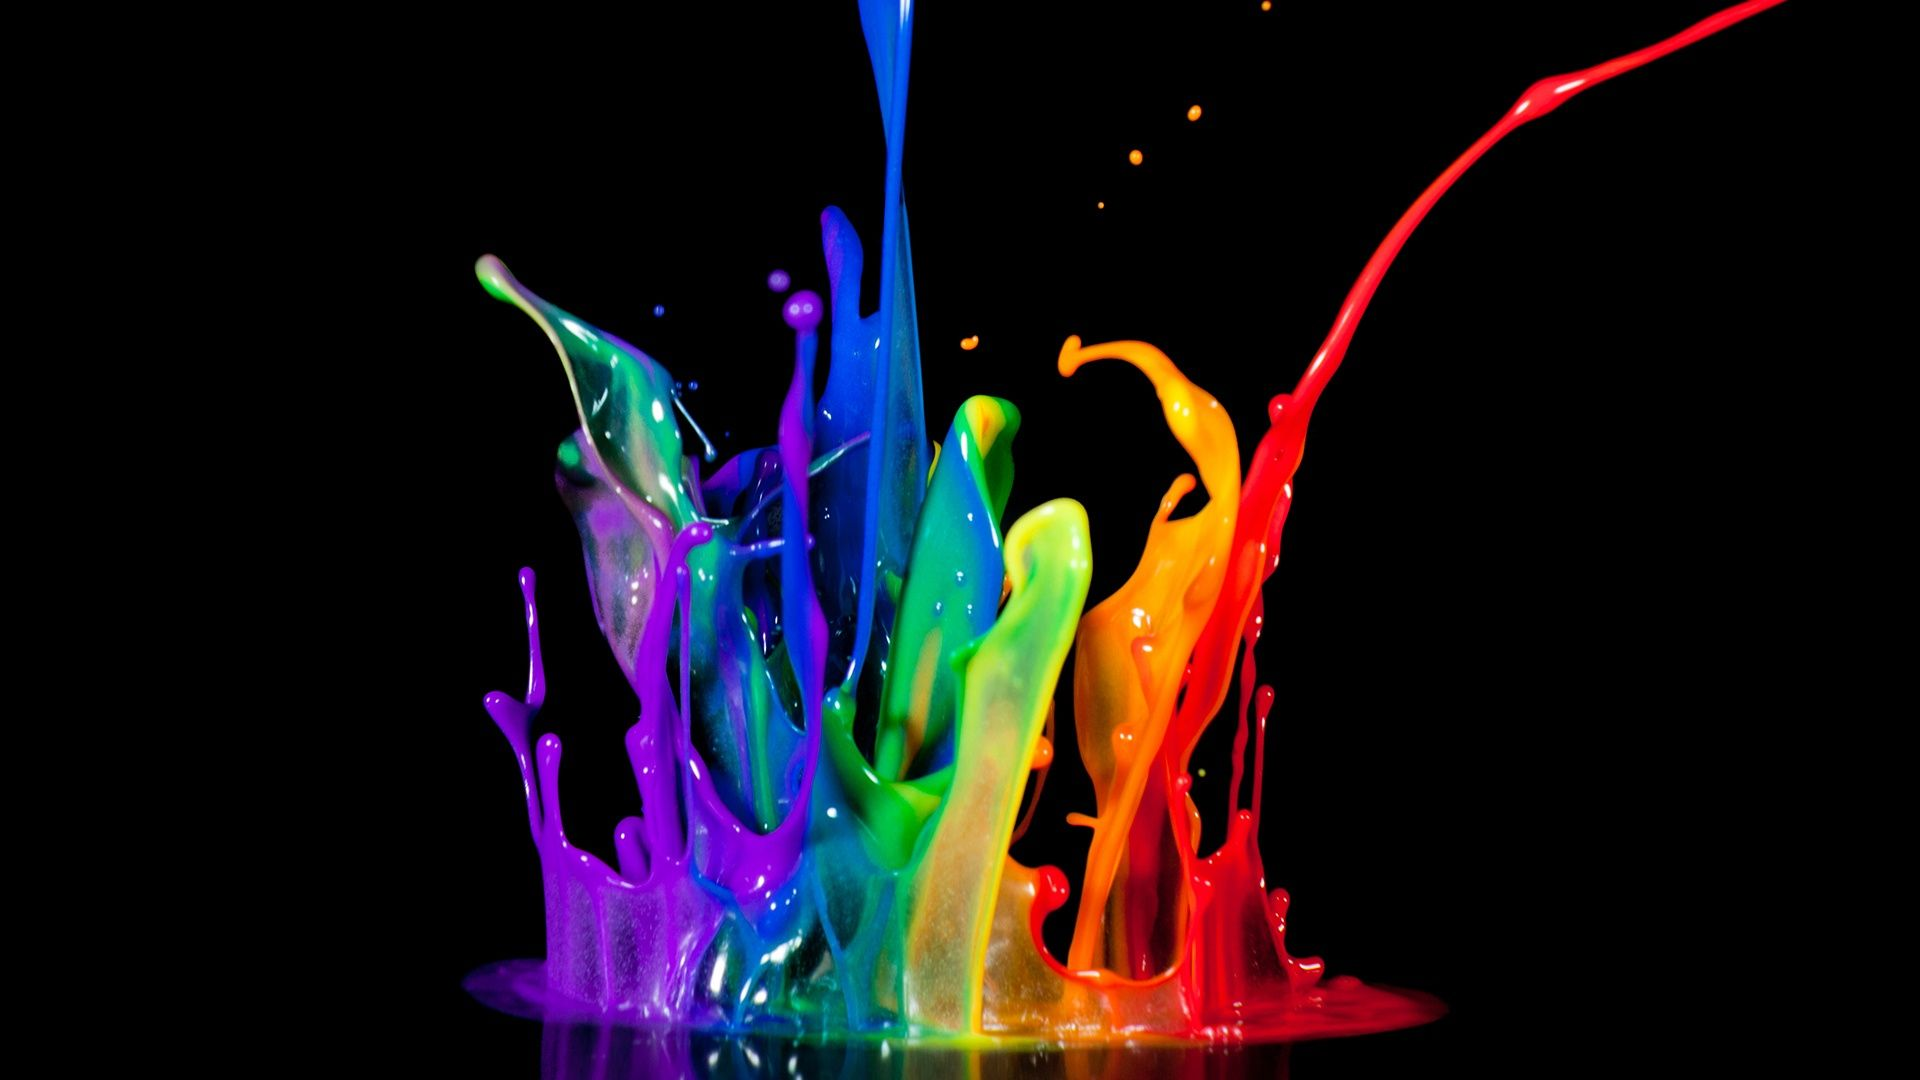 abstract colorful hd wallpaper